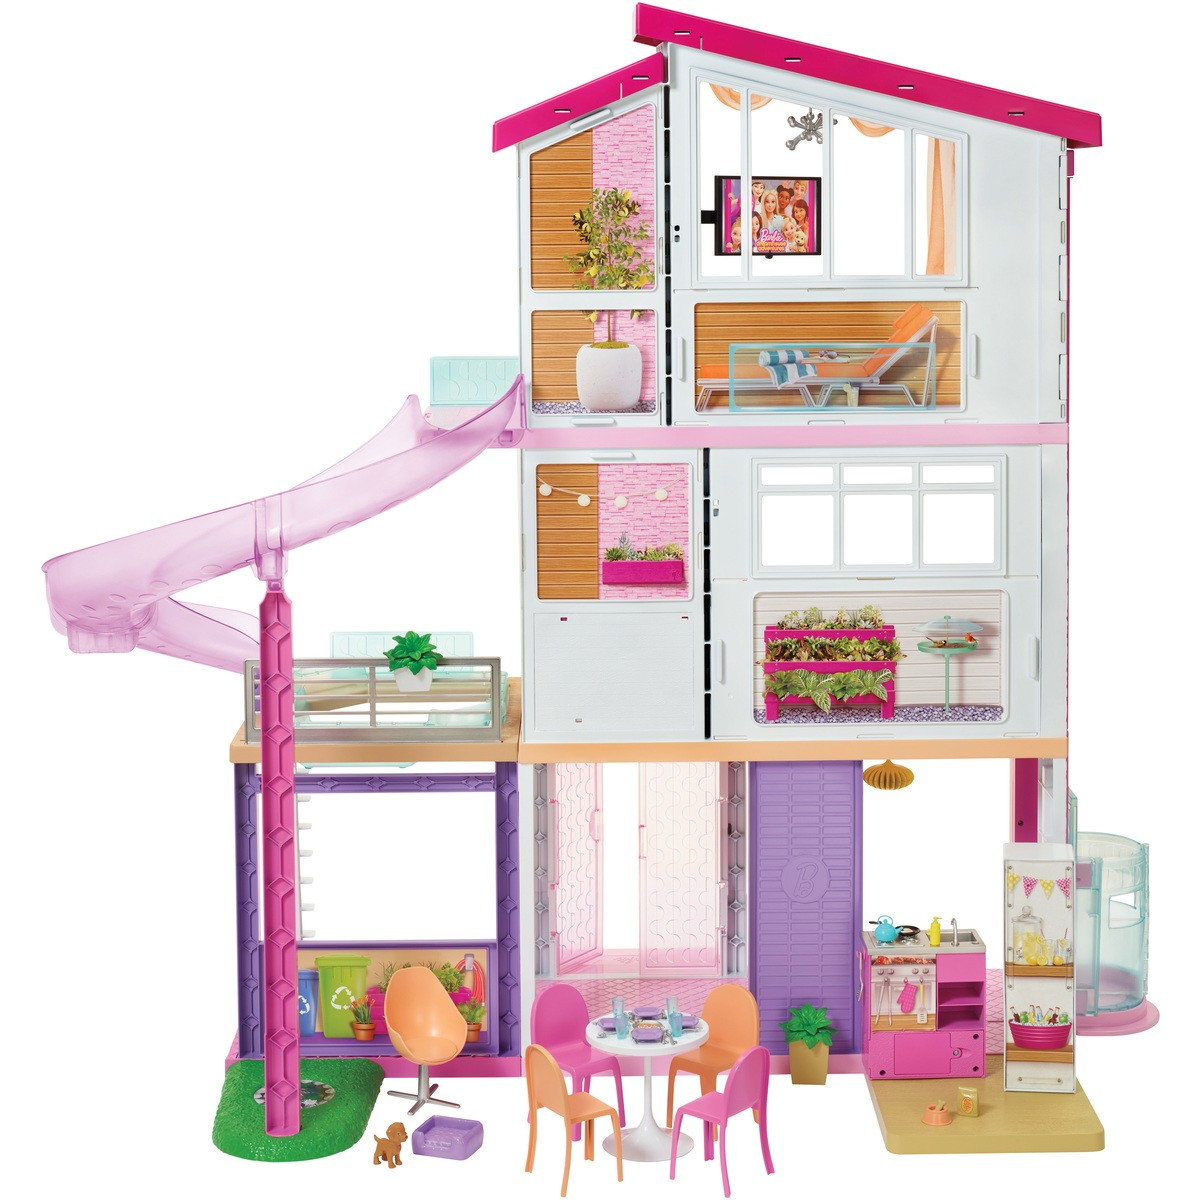 Barbie House Design Barbie Dreamhouse Big W